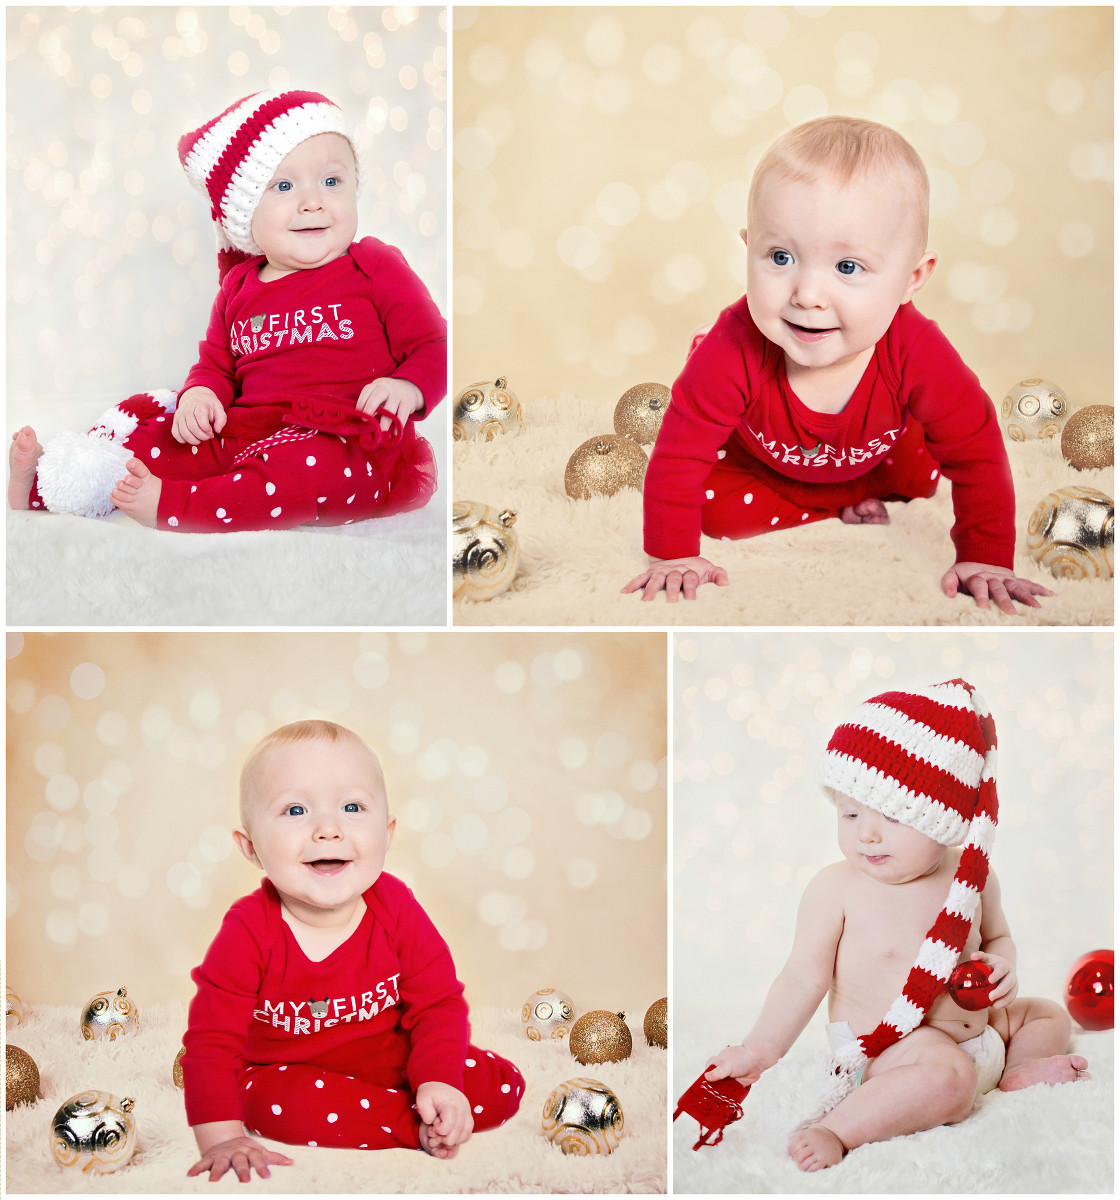 Baby first Christmas